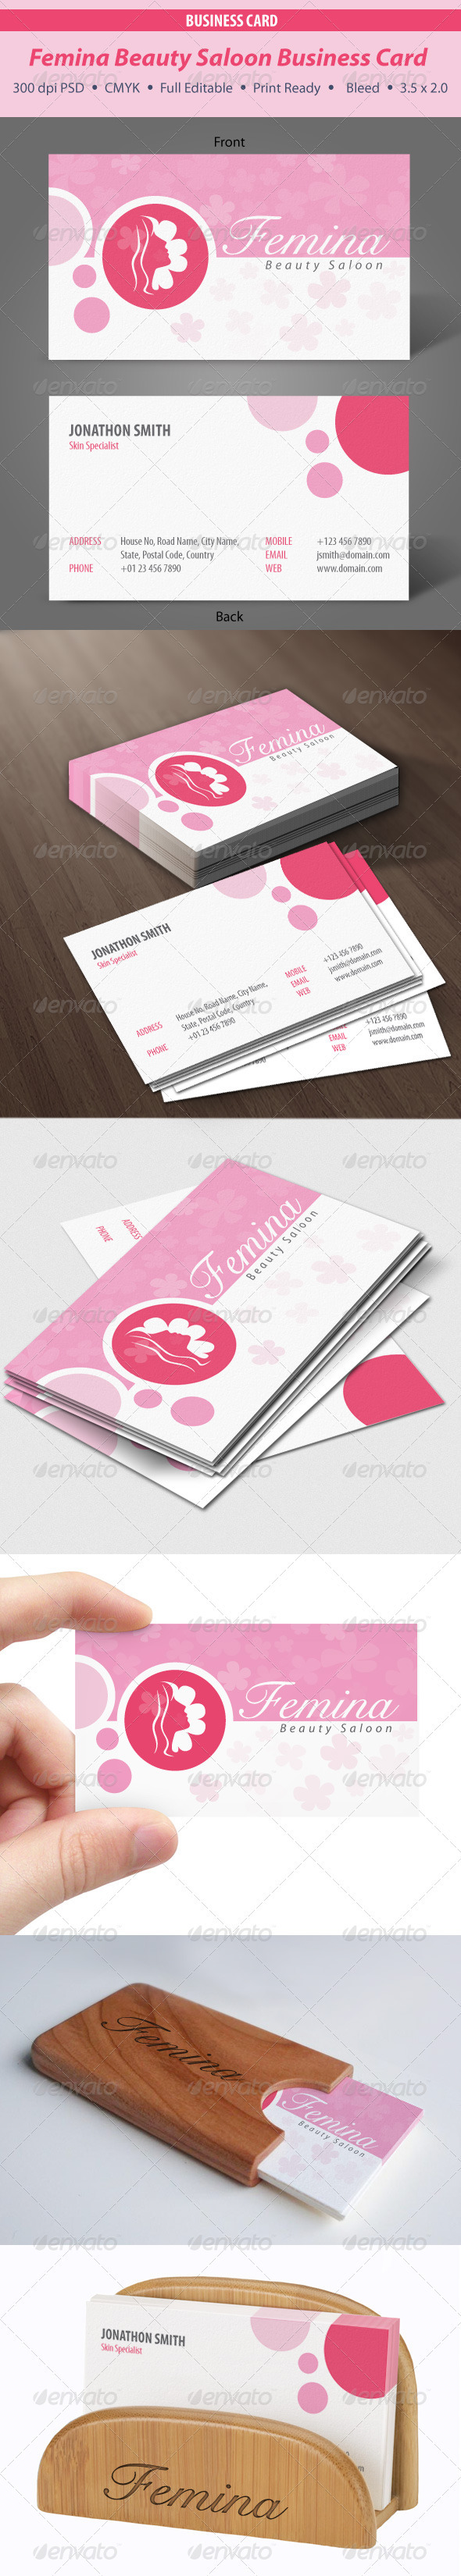 Femina Beauty Saloon Business Card - Industry Specific Business Cards